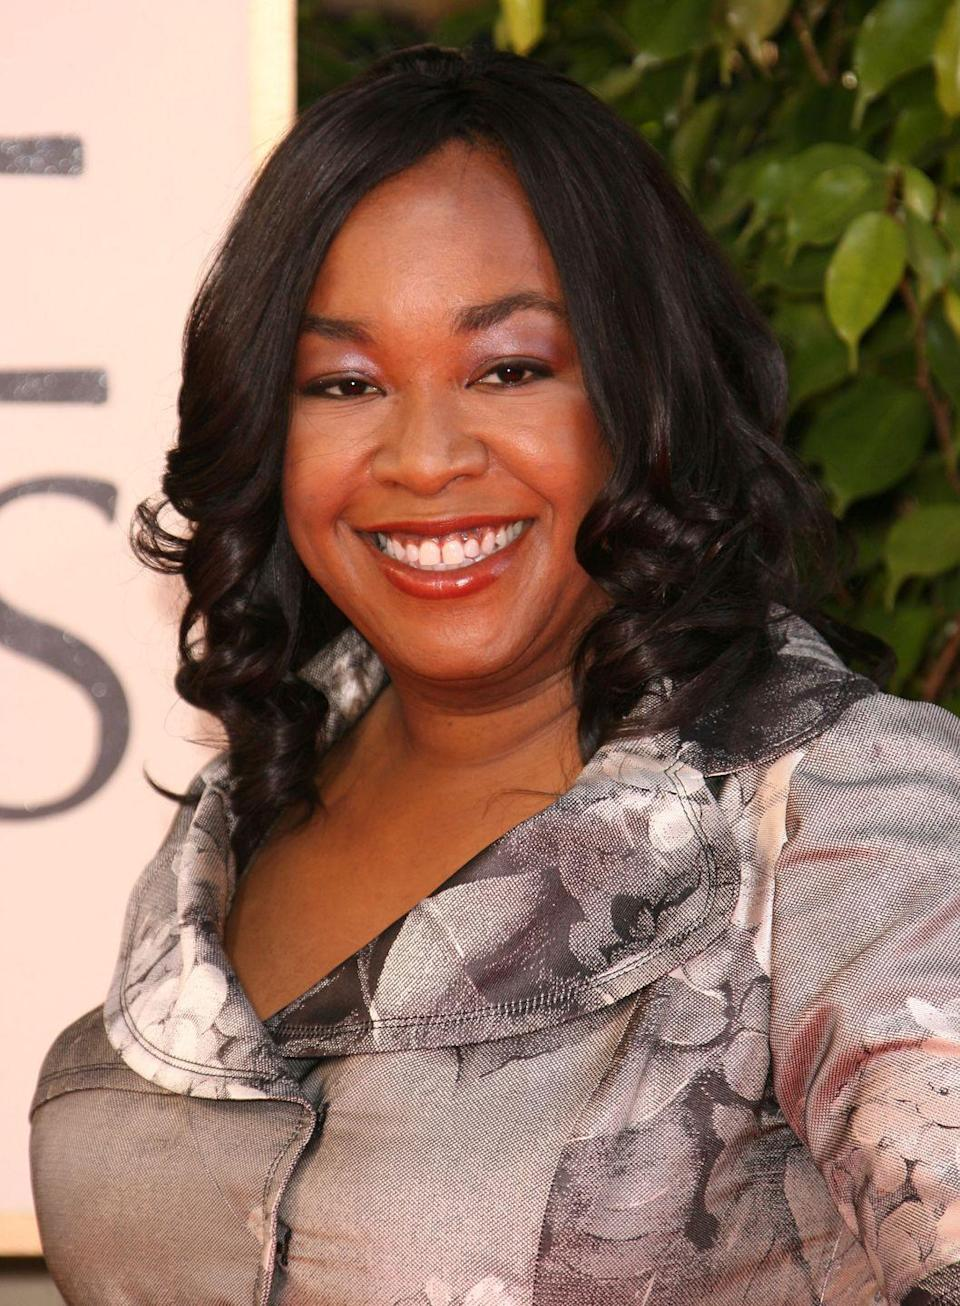 """<p>In the same interview with <a href=""""http://www.oprah.com/omagazine/oprah-interviews-greys-anatomy-creator-shonda-rhimes#ixzz4nO3igJrm"""" rel=""""nofollow noopener"""" target=""""_blank"""" data-ylk=""""slk:Oprah"""" class=""""link rapid-noclick-resp"""">Oprah</a>, Rhimes said, """"My show is more personal [than <em>E.R.</em><span class=""""redactor-invisible-space"""">]</span>. The idea for the series began when a doctor told me it was incredibly hard to shave her legs in the hospital shower. At first that seemed like a silly detail. But then I thought about the fact that it was the only time and place this woman might have to shave her legs.""""<br></p>"""